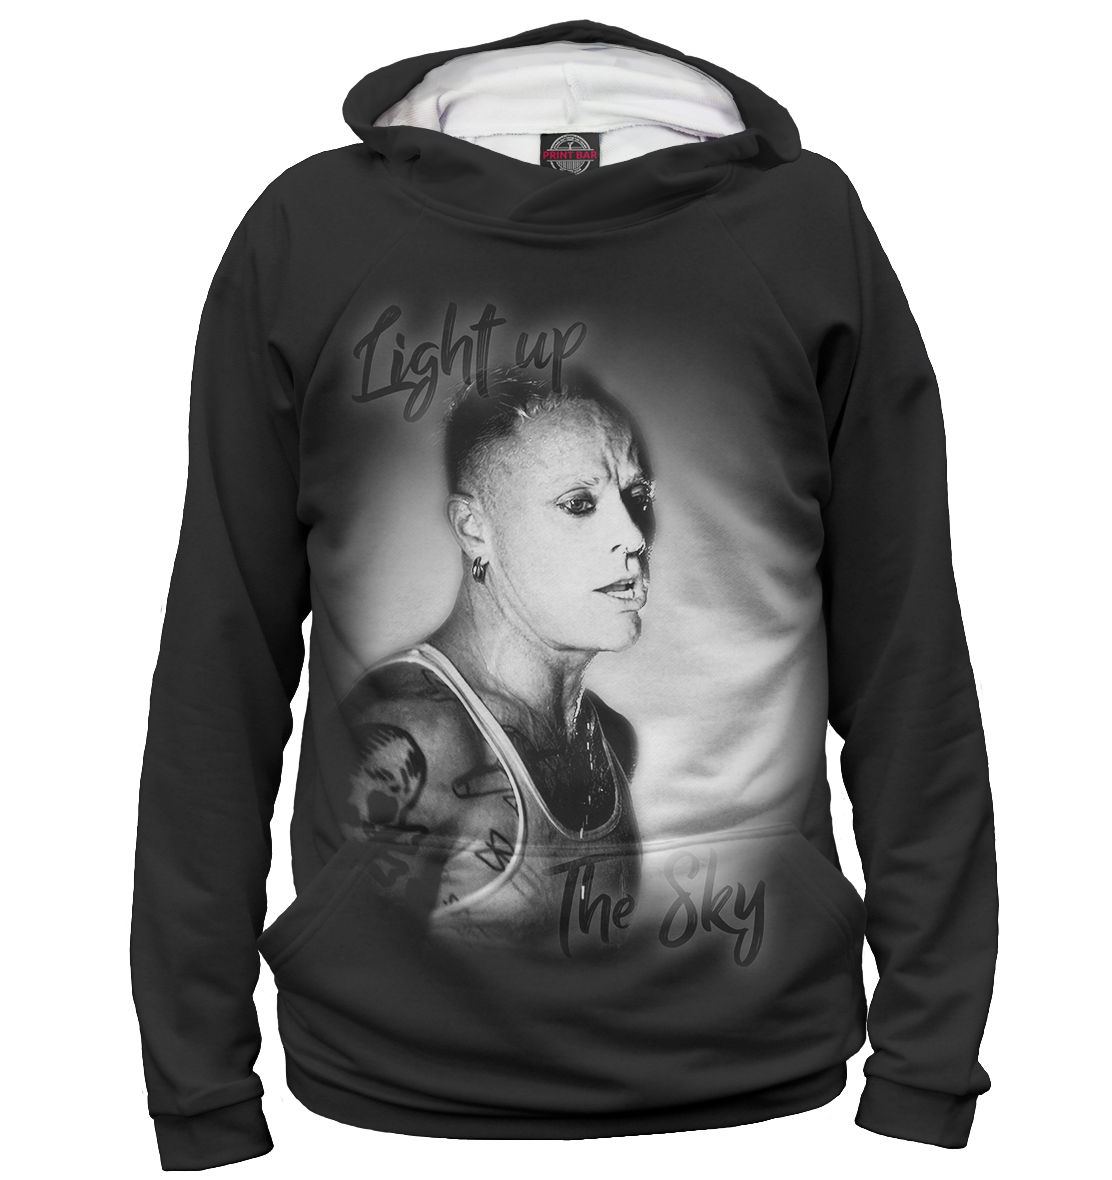 Keith Flint — Light Up the Sky martin macmillan together they hold up the sky